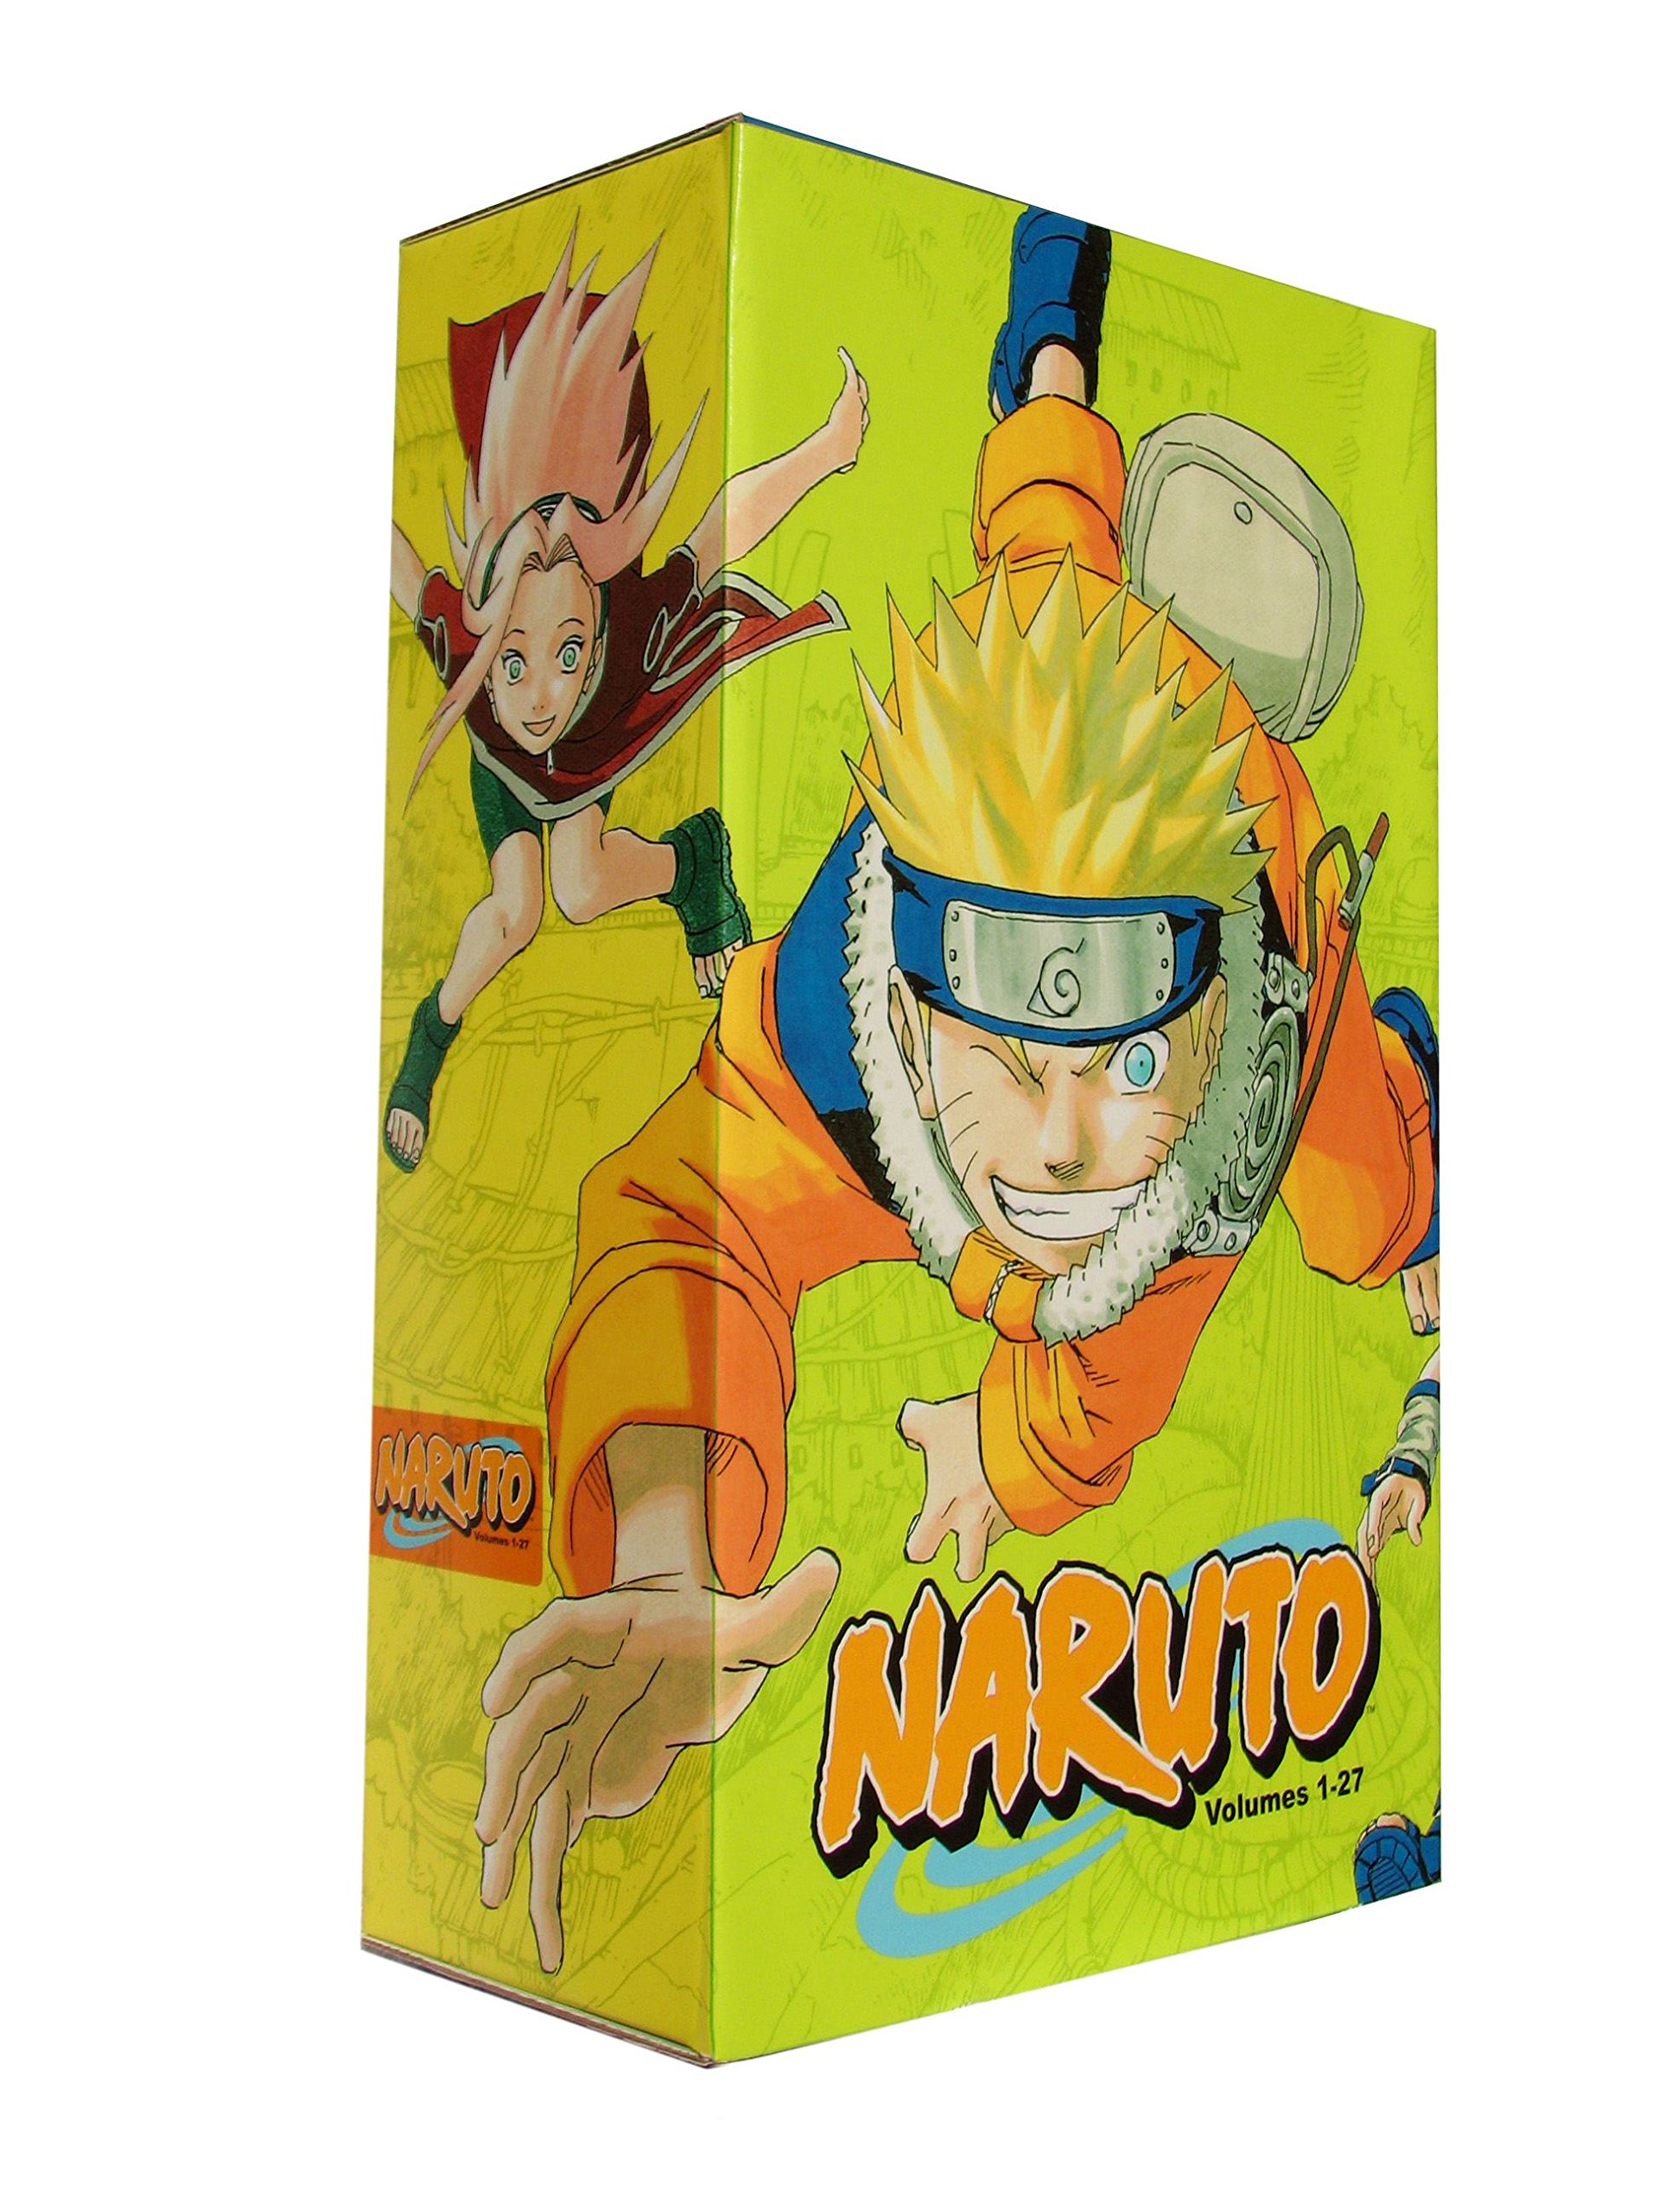 Amazon.com: Naruto Box Set 1: Volumes 1-27 with Premium (9781421525822):  Masashi Kishimoto: Books